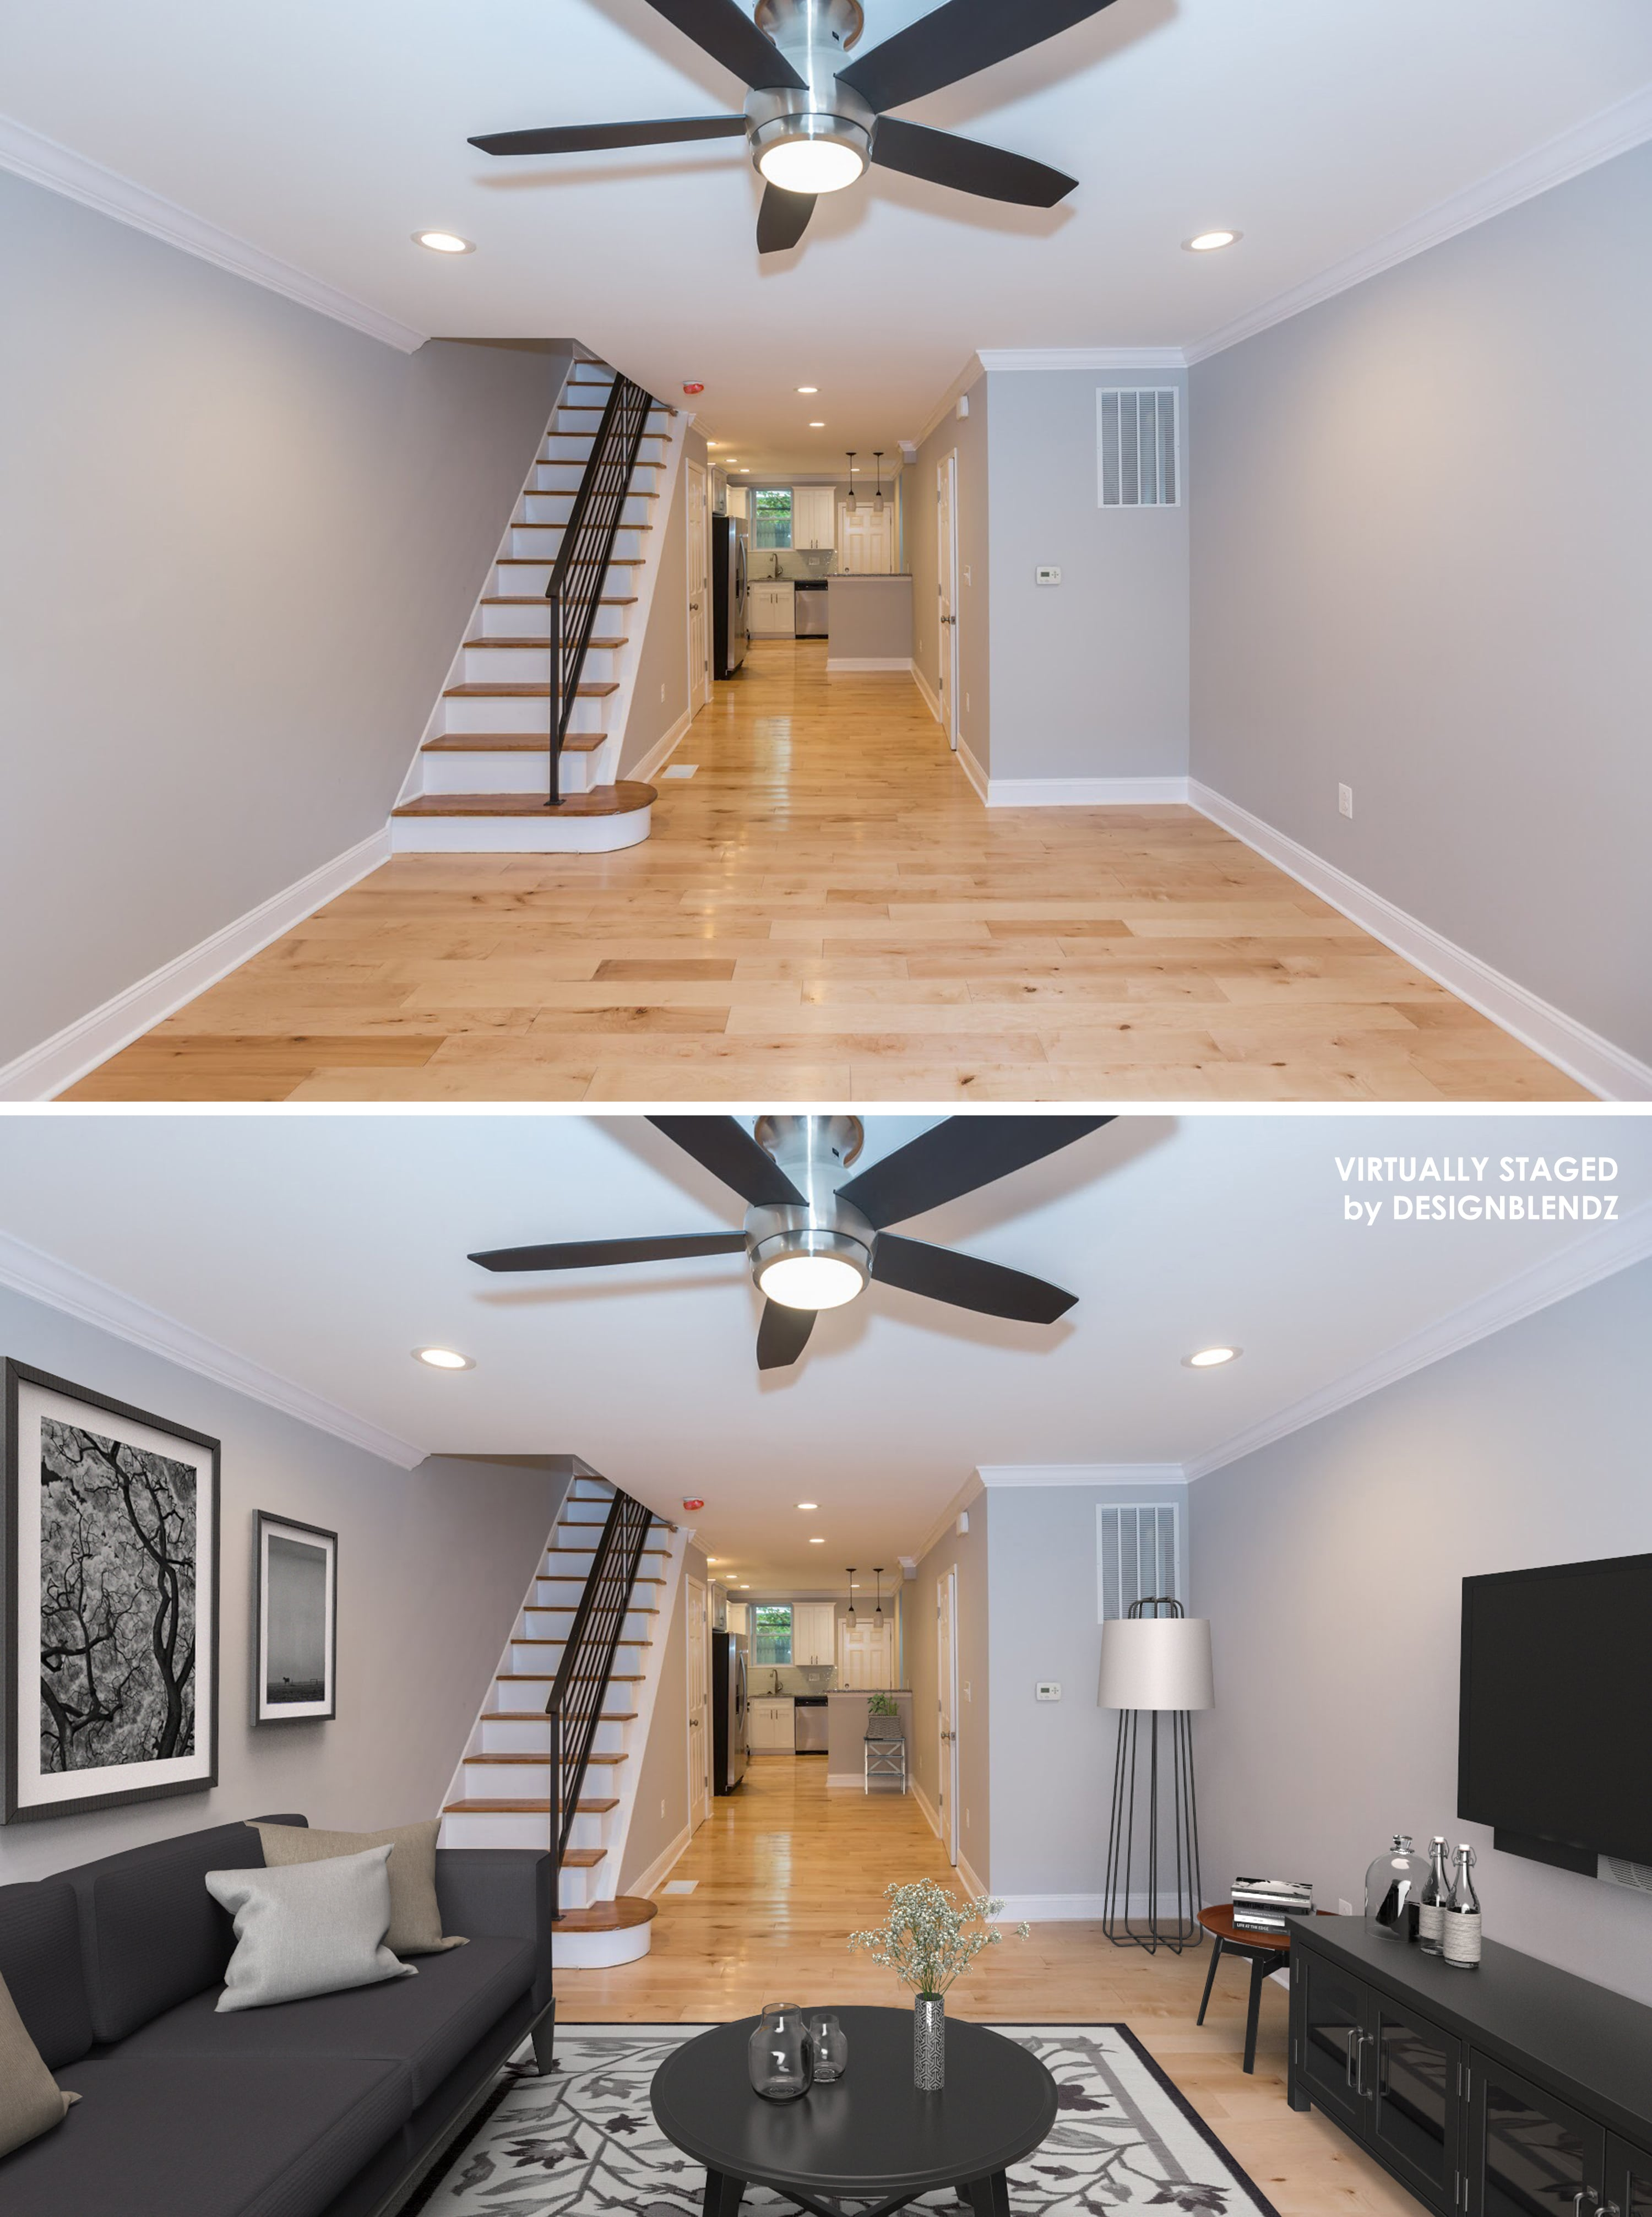 Family room virtual staging example